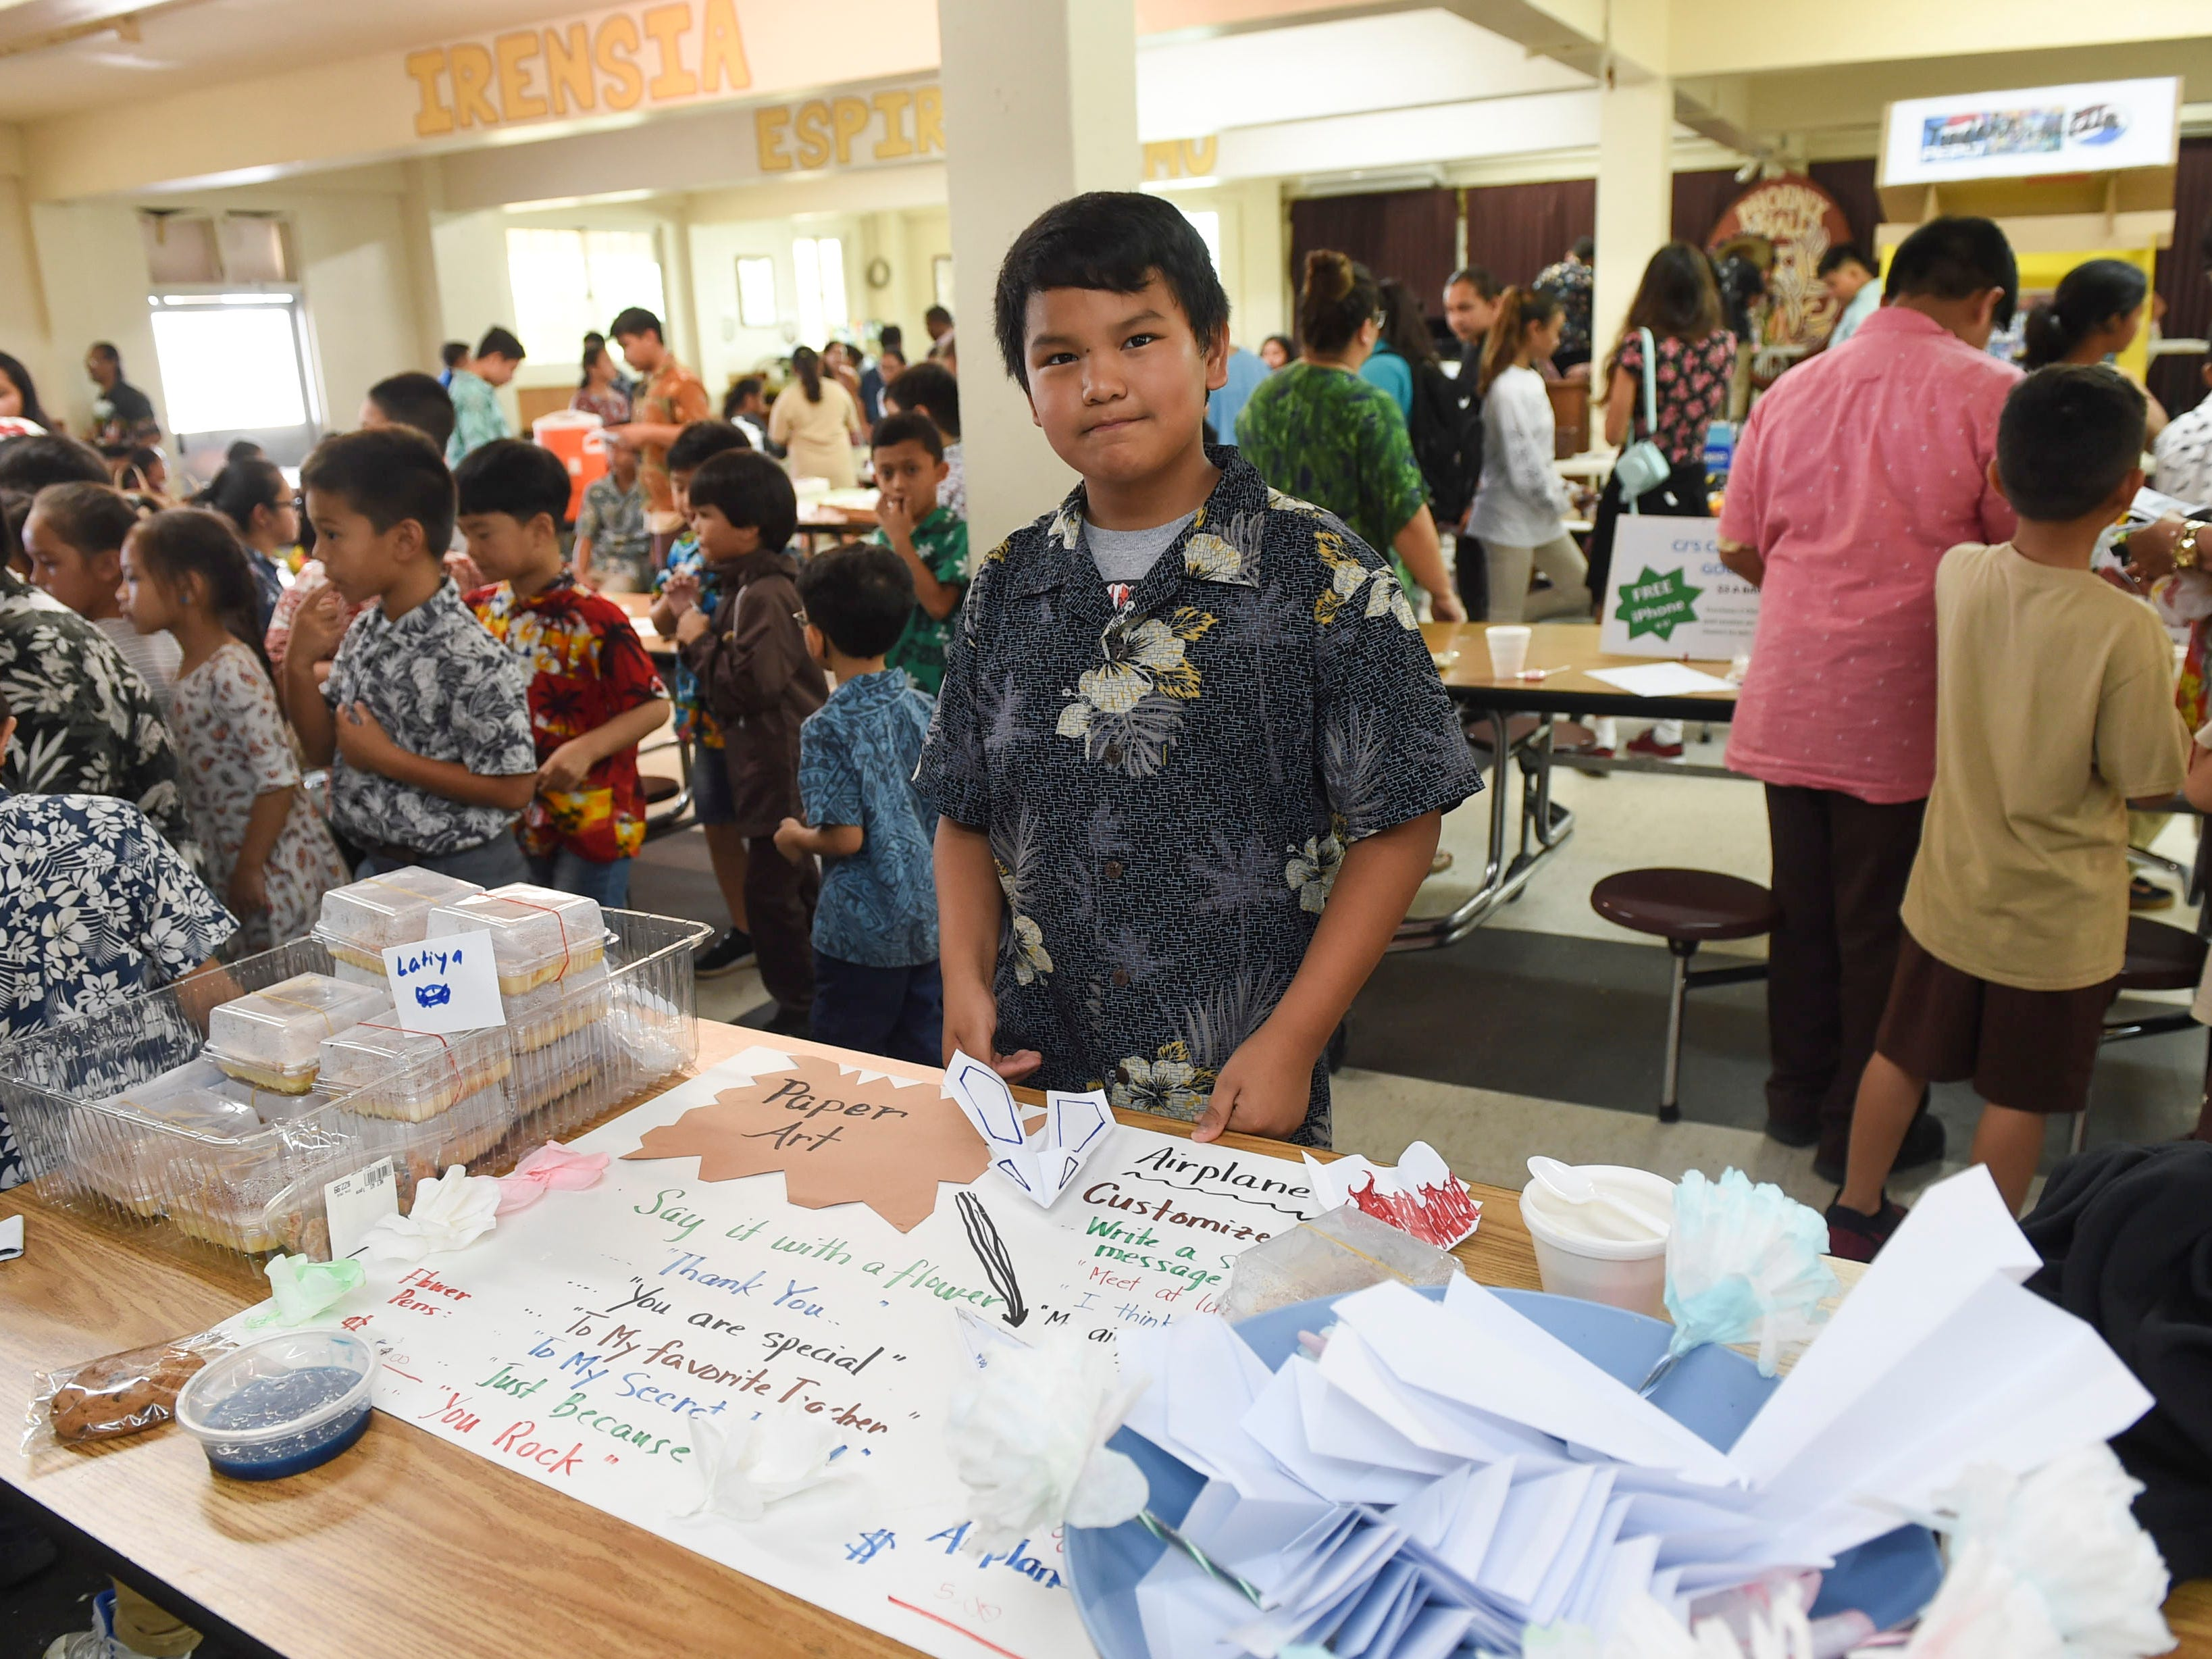 Sixth-grader Tabaaha Yellow horse, 11, at his Paper Art business stand during the 5th Annual Ysrael School of Business Retail Bazaar and Entrepreneur Fair in the Our Lady of Mount Carmel Catholic School Phoenix Hall, Jan. 18, 2019.